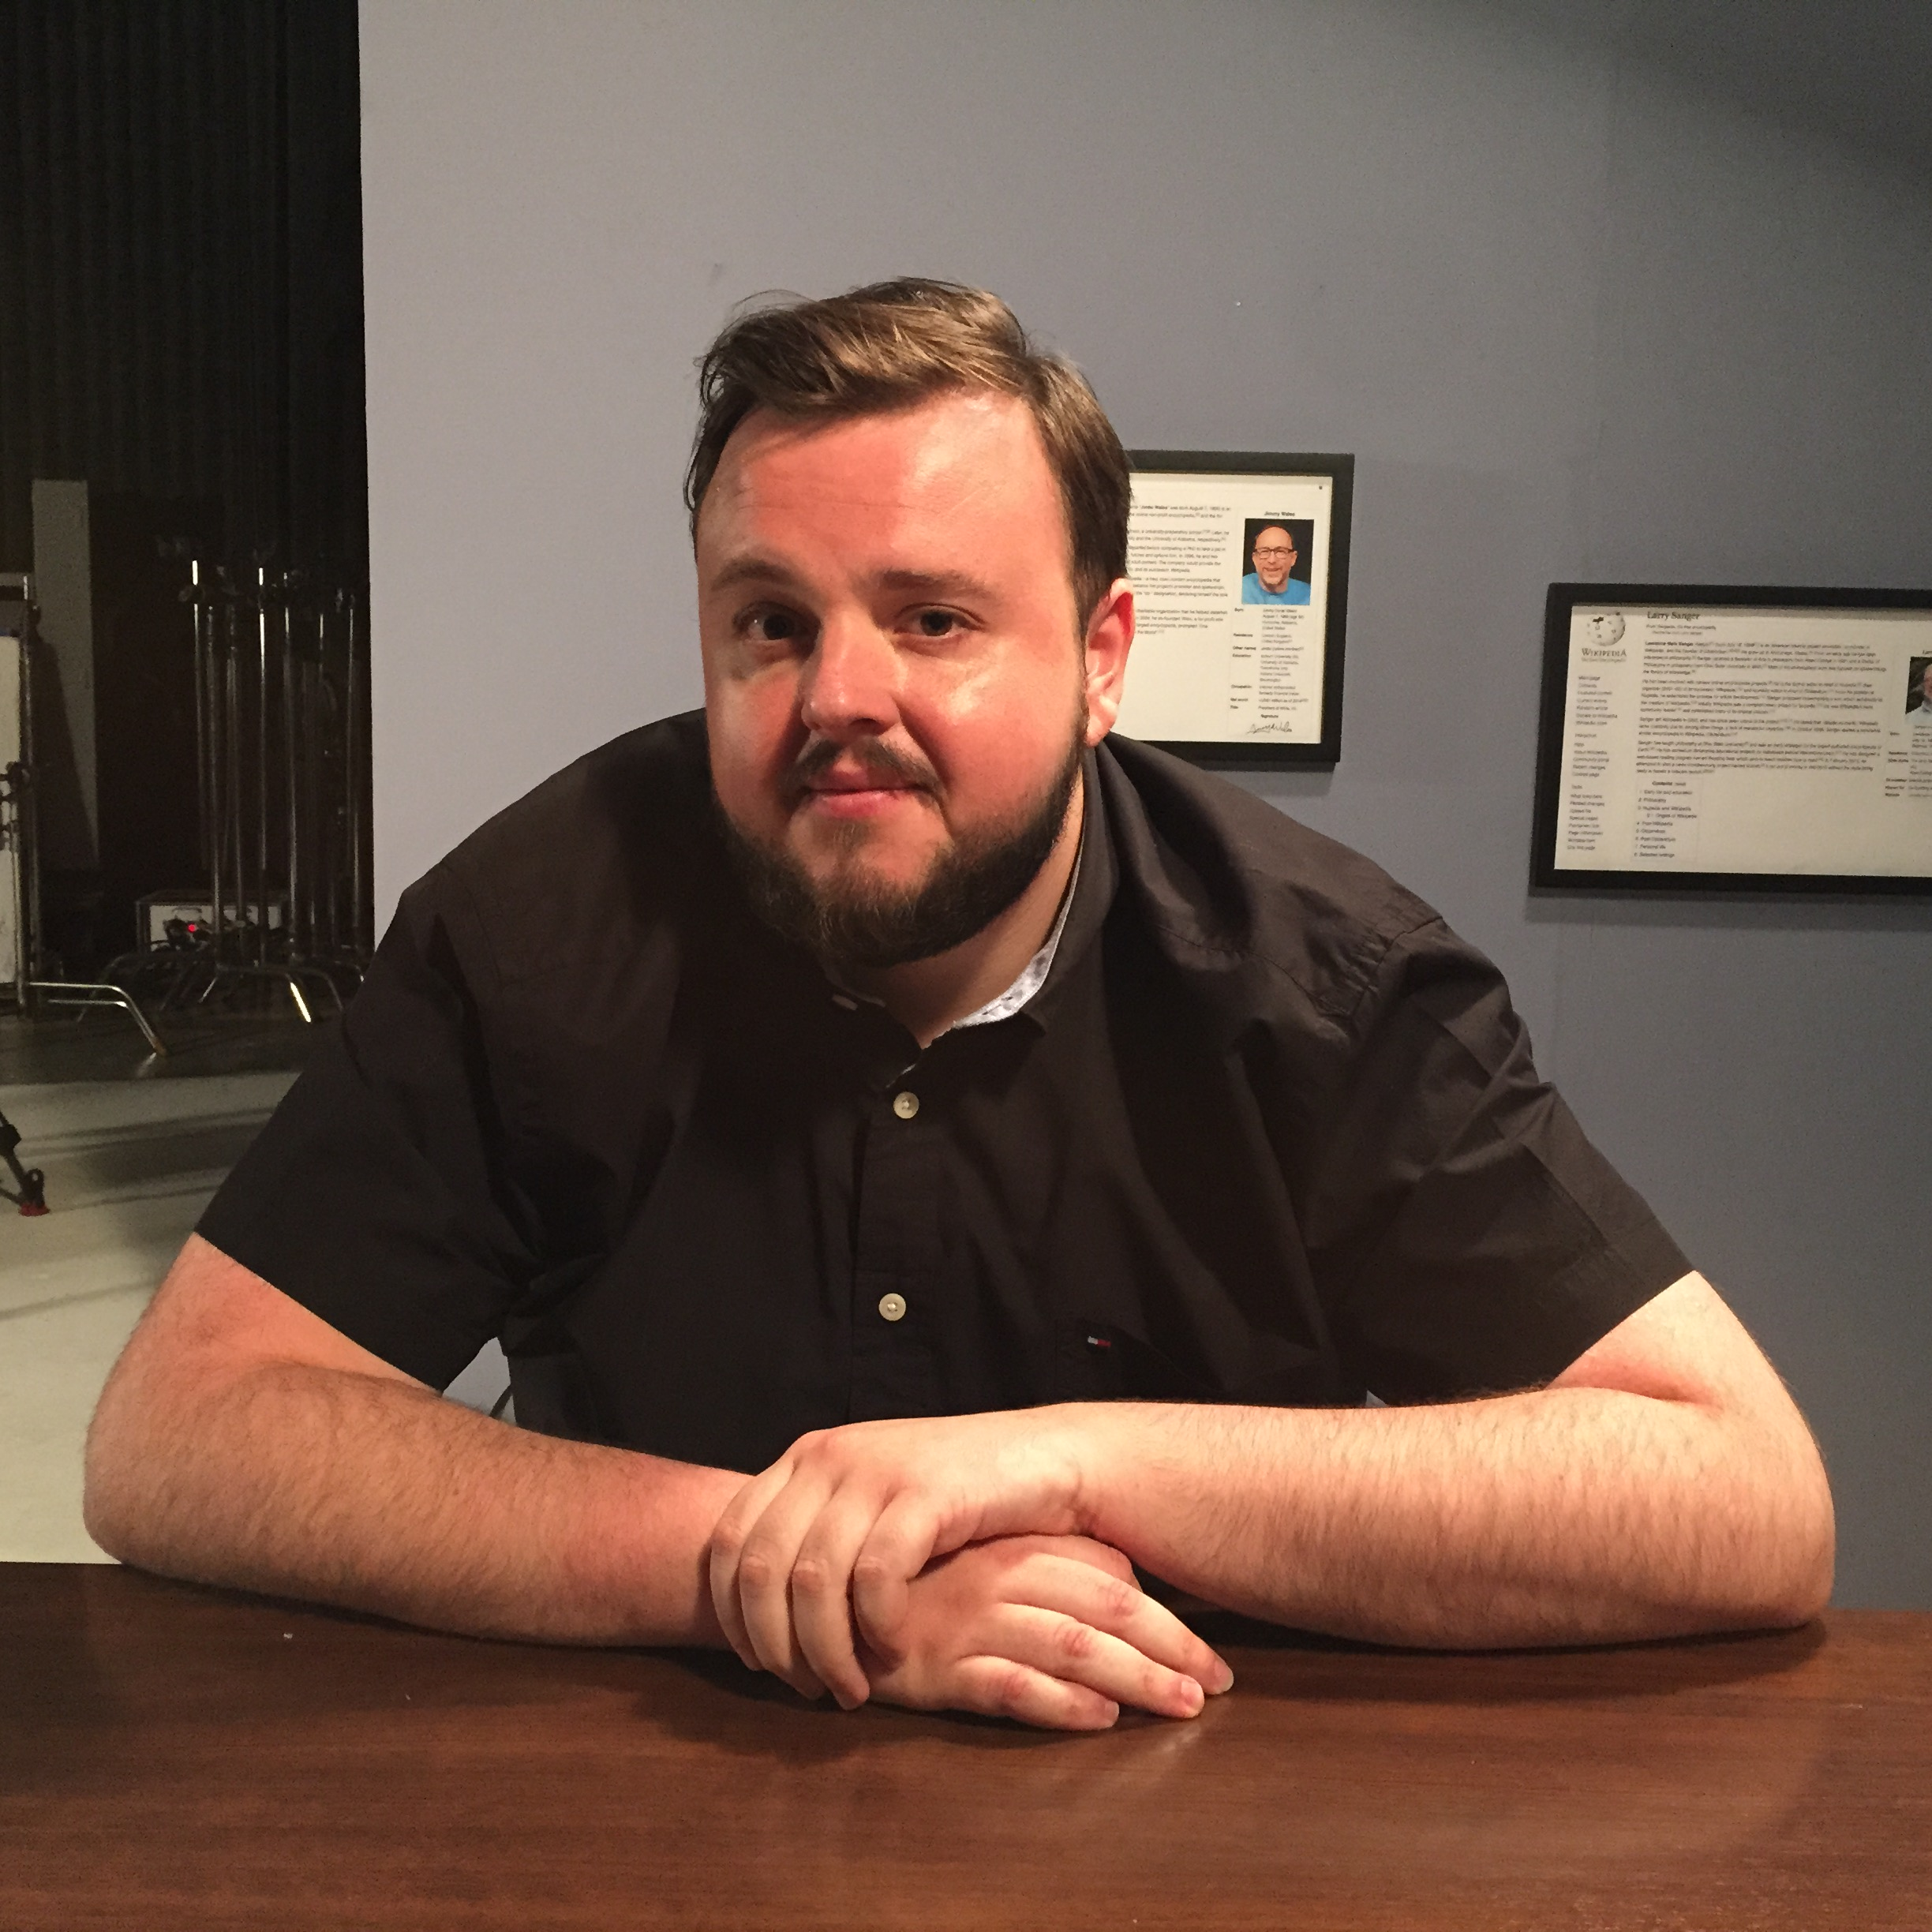 The 30-year old son of father (?) and mother(?) John Bradley- West in 2018 photo. John Bradley- West earned a  million dollar salary - leaving the net worth at 1.17 million in 2018